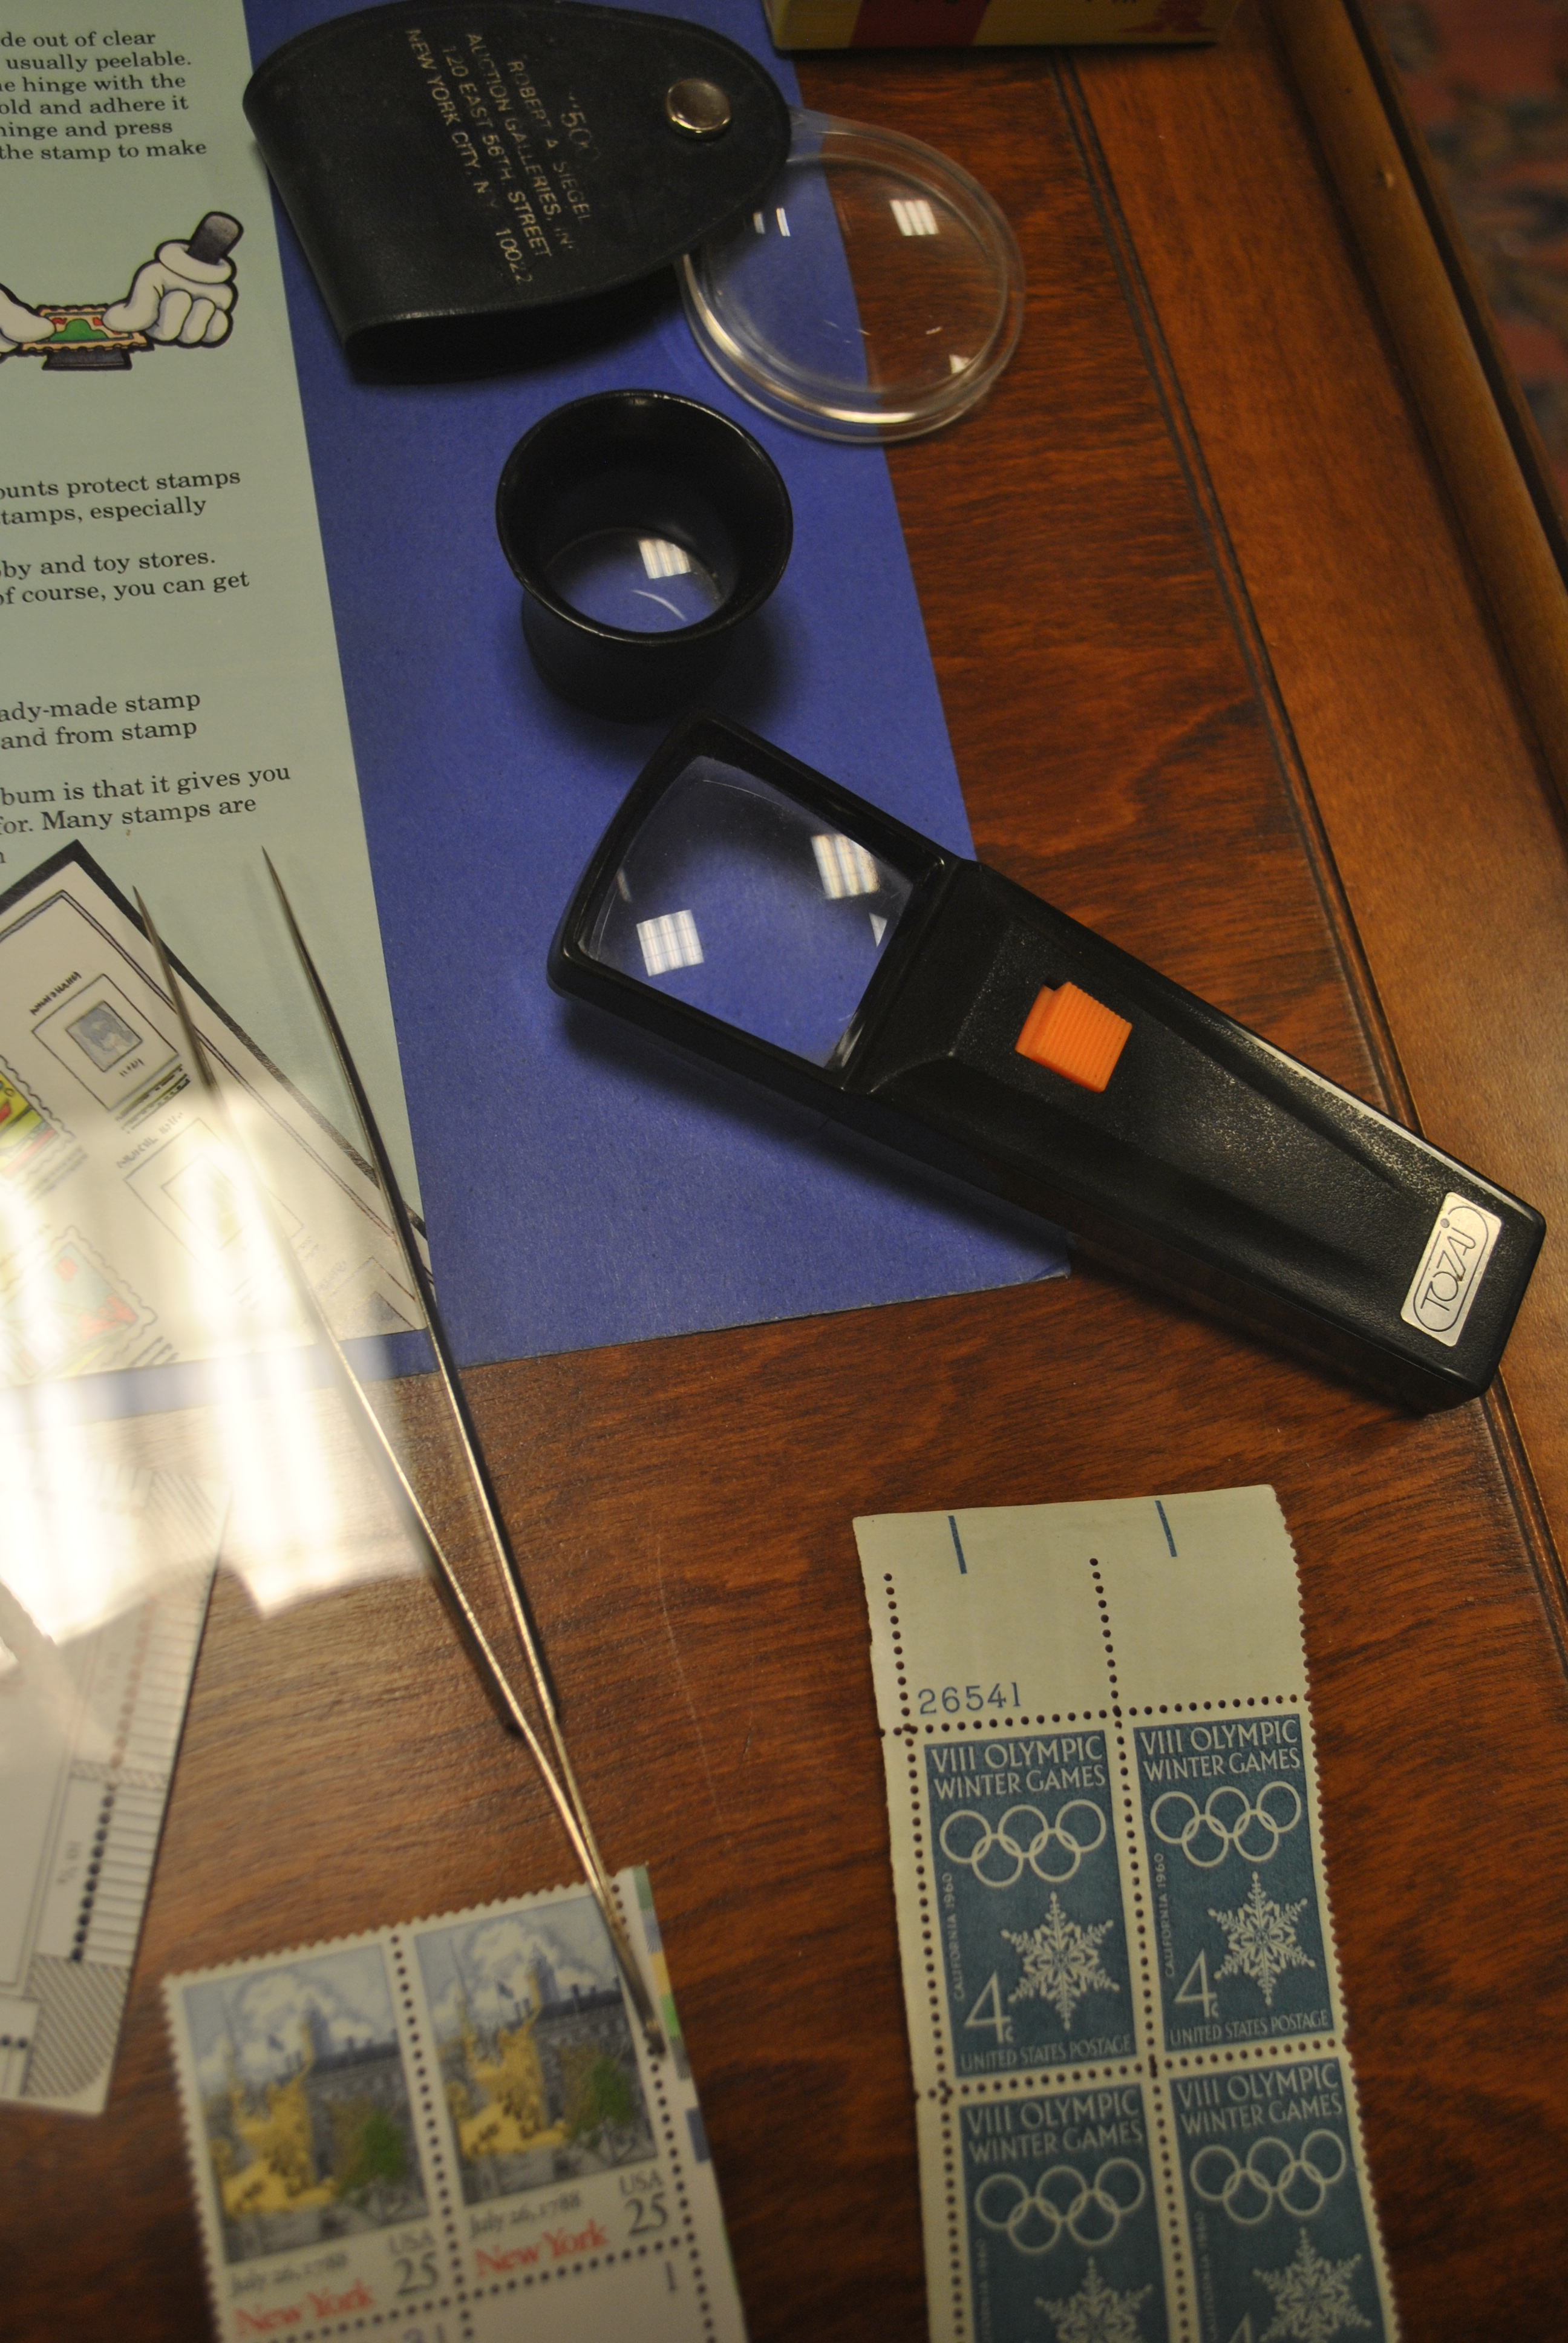 Magnifying Glasses And Other Tools Used By Stamp Collectors Are Part Of The Brookfield Philatelic Society Exhibit Now At CH Booth Library